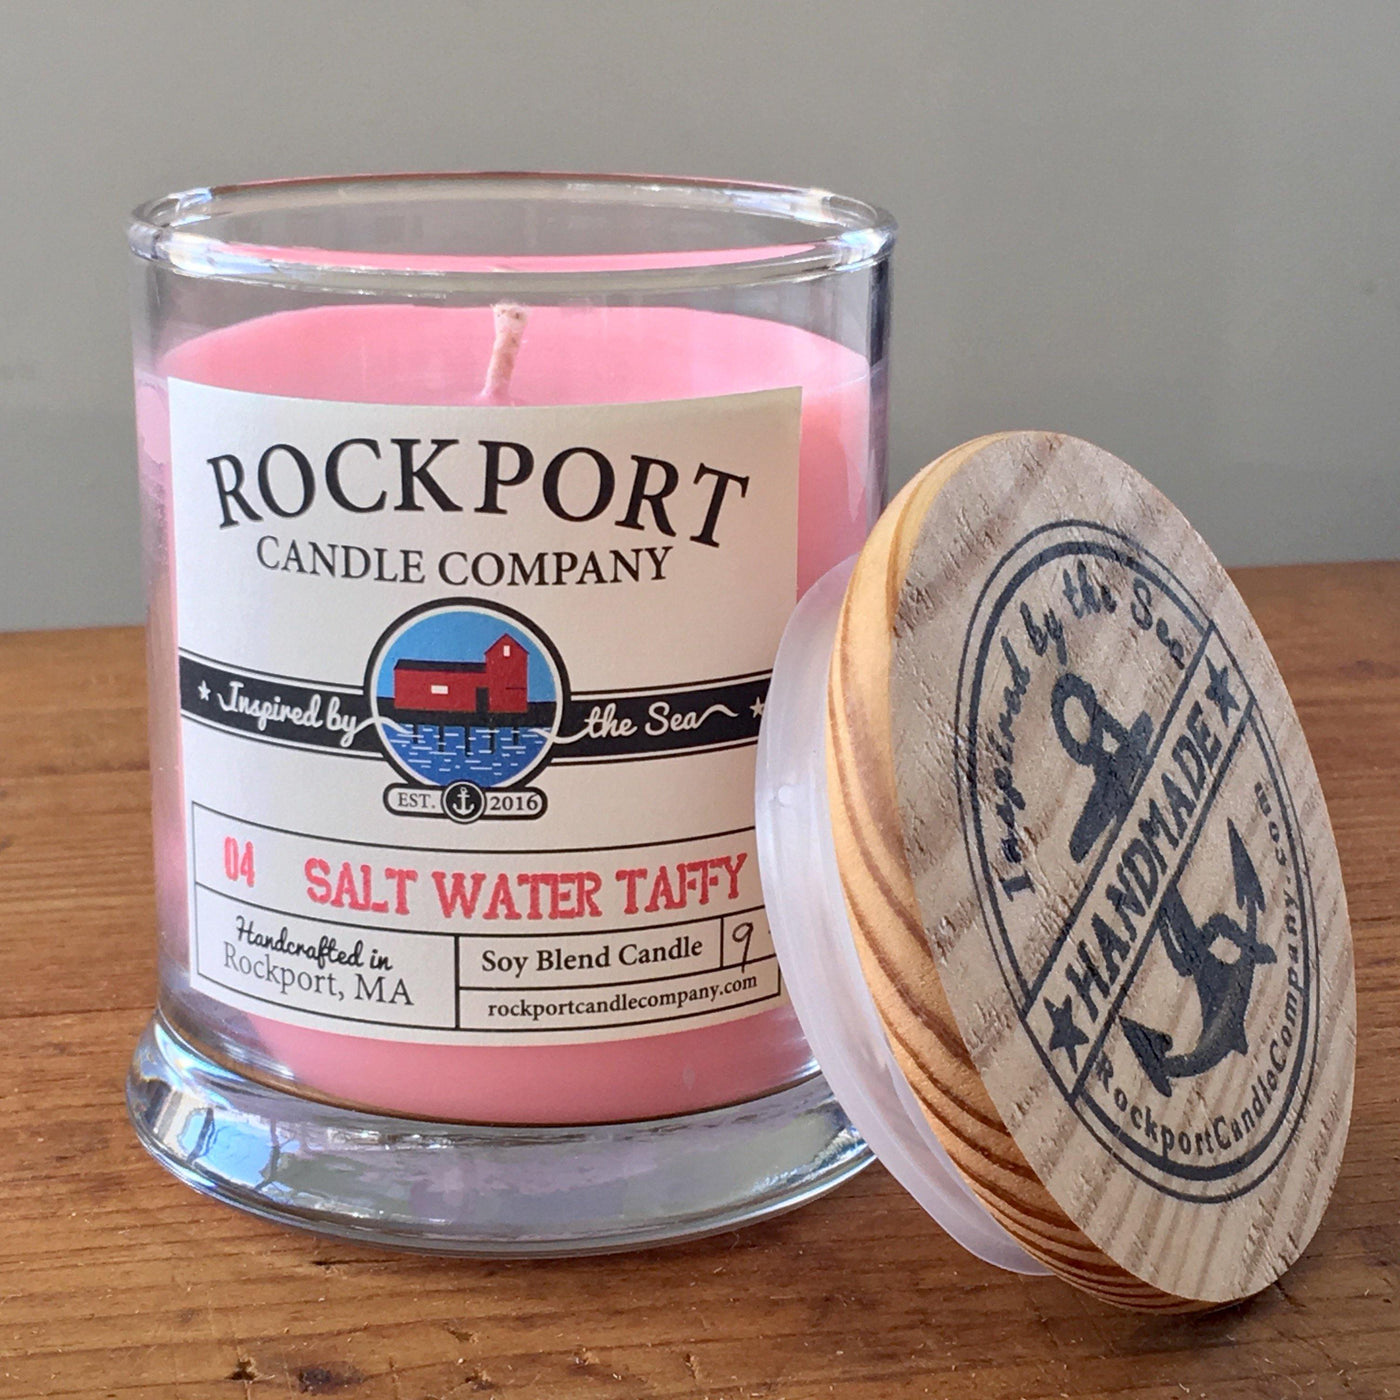 04 Salt Water Taffy Candles Rockport Candle Company